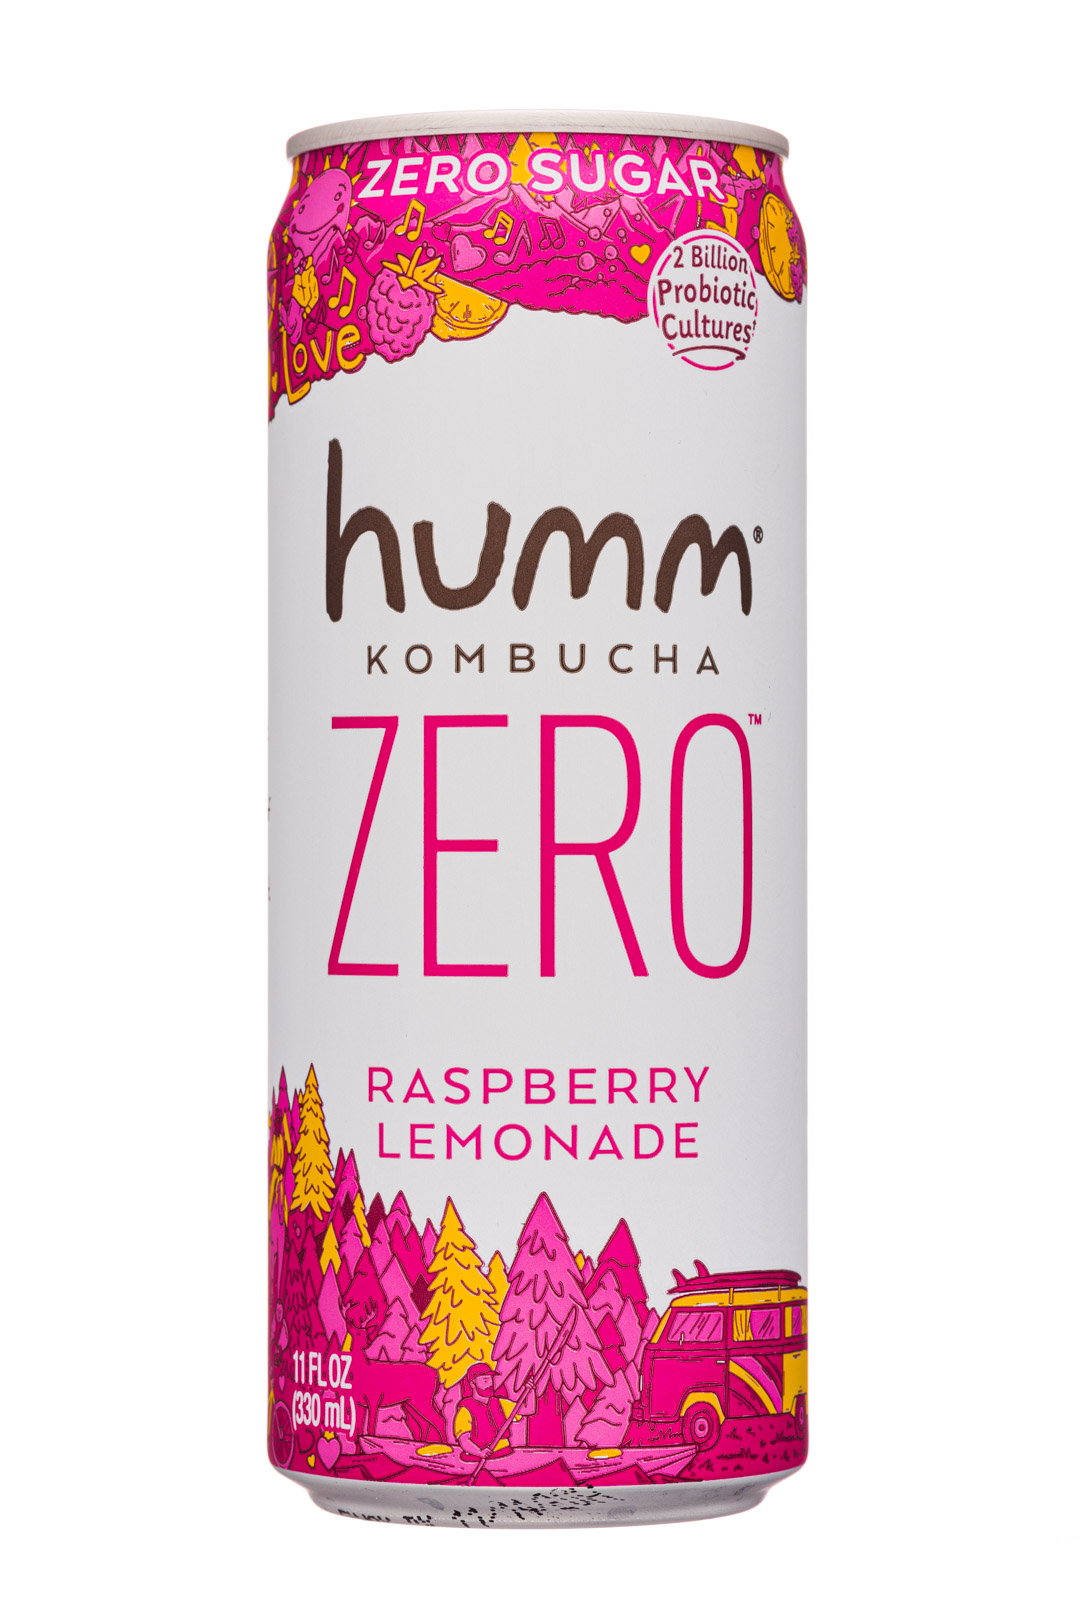 Humm Zero - Raspberry Lemonade